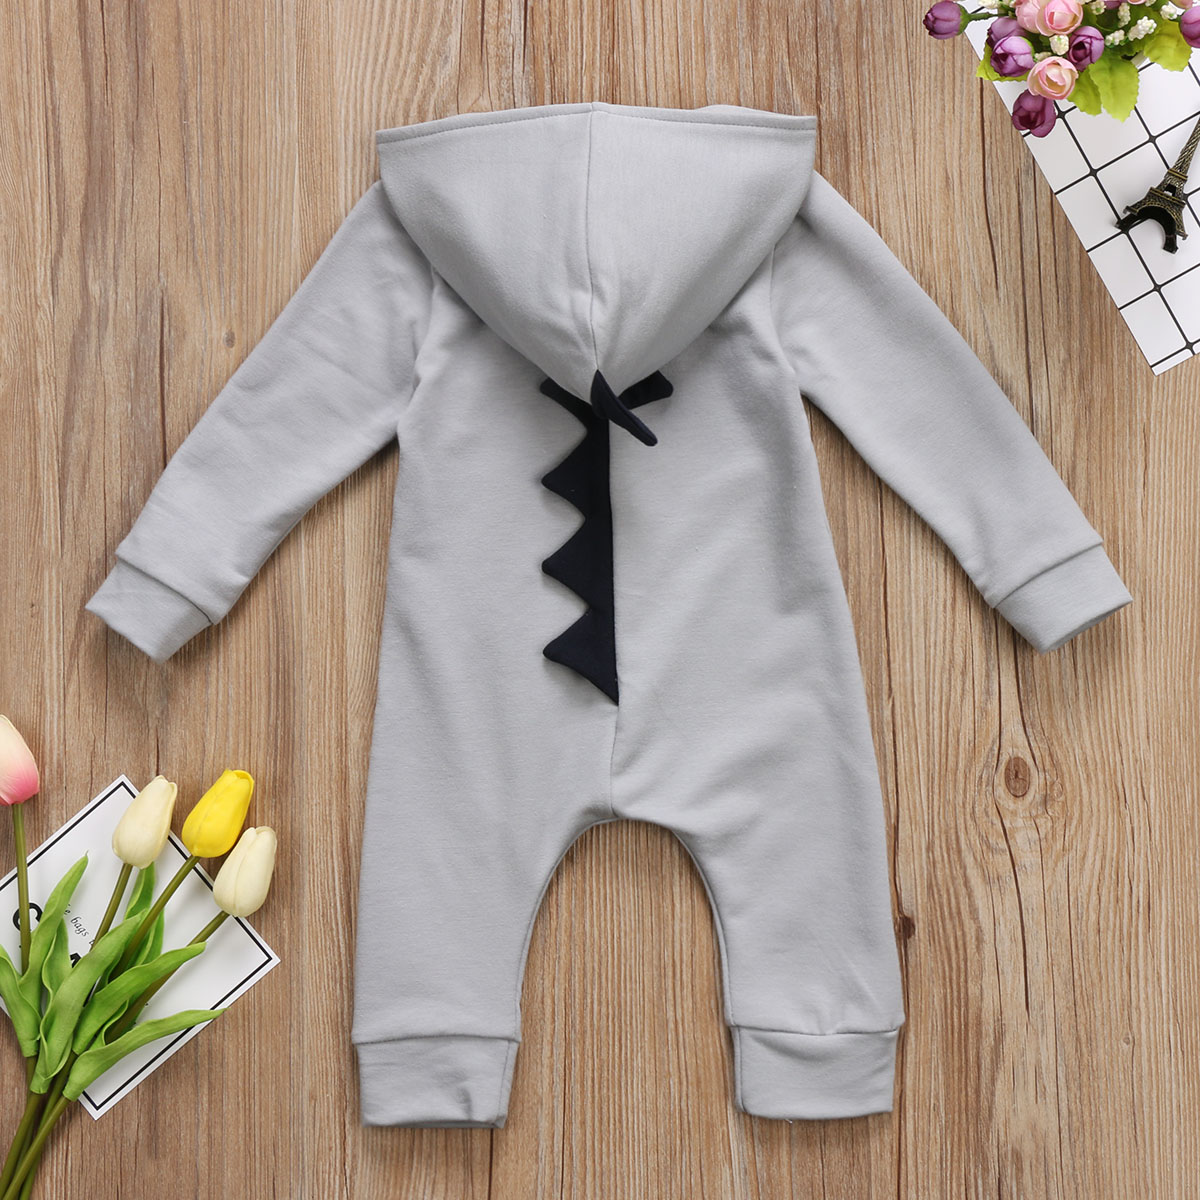 HTB1hn8TjMMPMeJjy1Xdq6ysrXXat Emmababy Baby Boy Girl 3D Dinosaur Costume Solid pink gray Rompers warm spring autumn cotton romper Playsuit Clothes